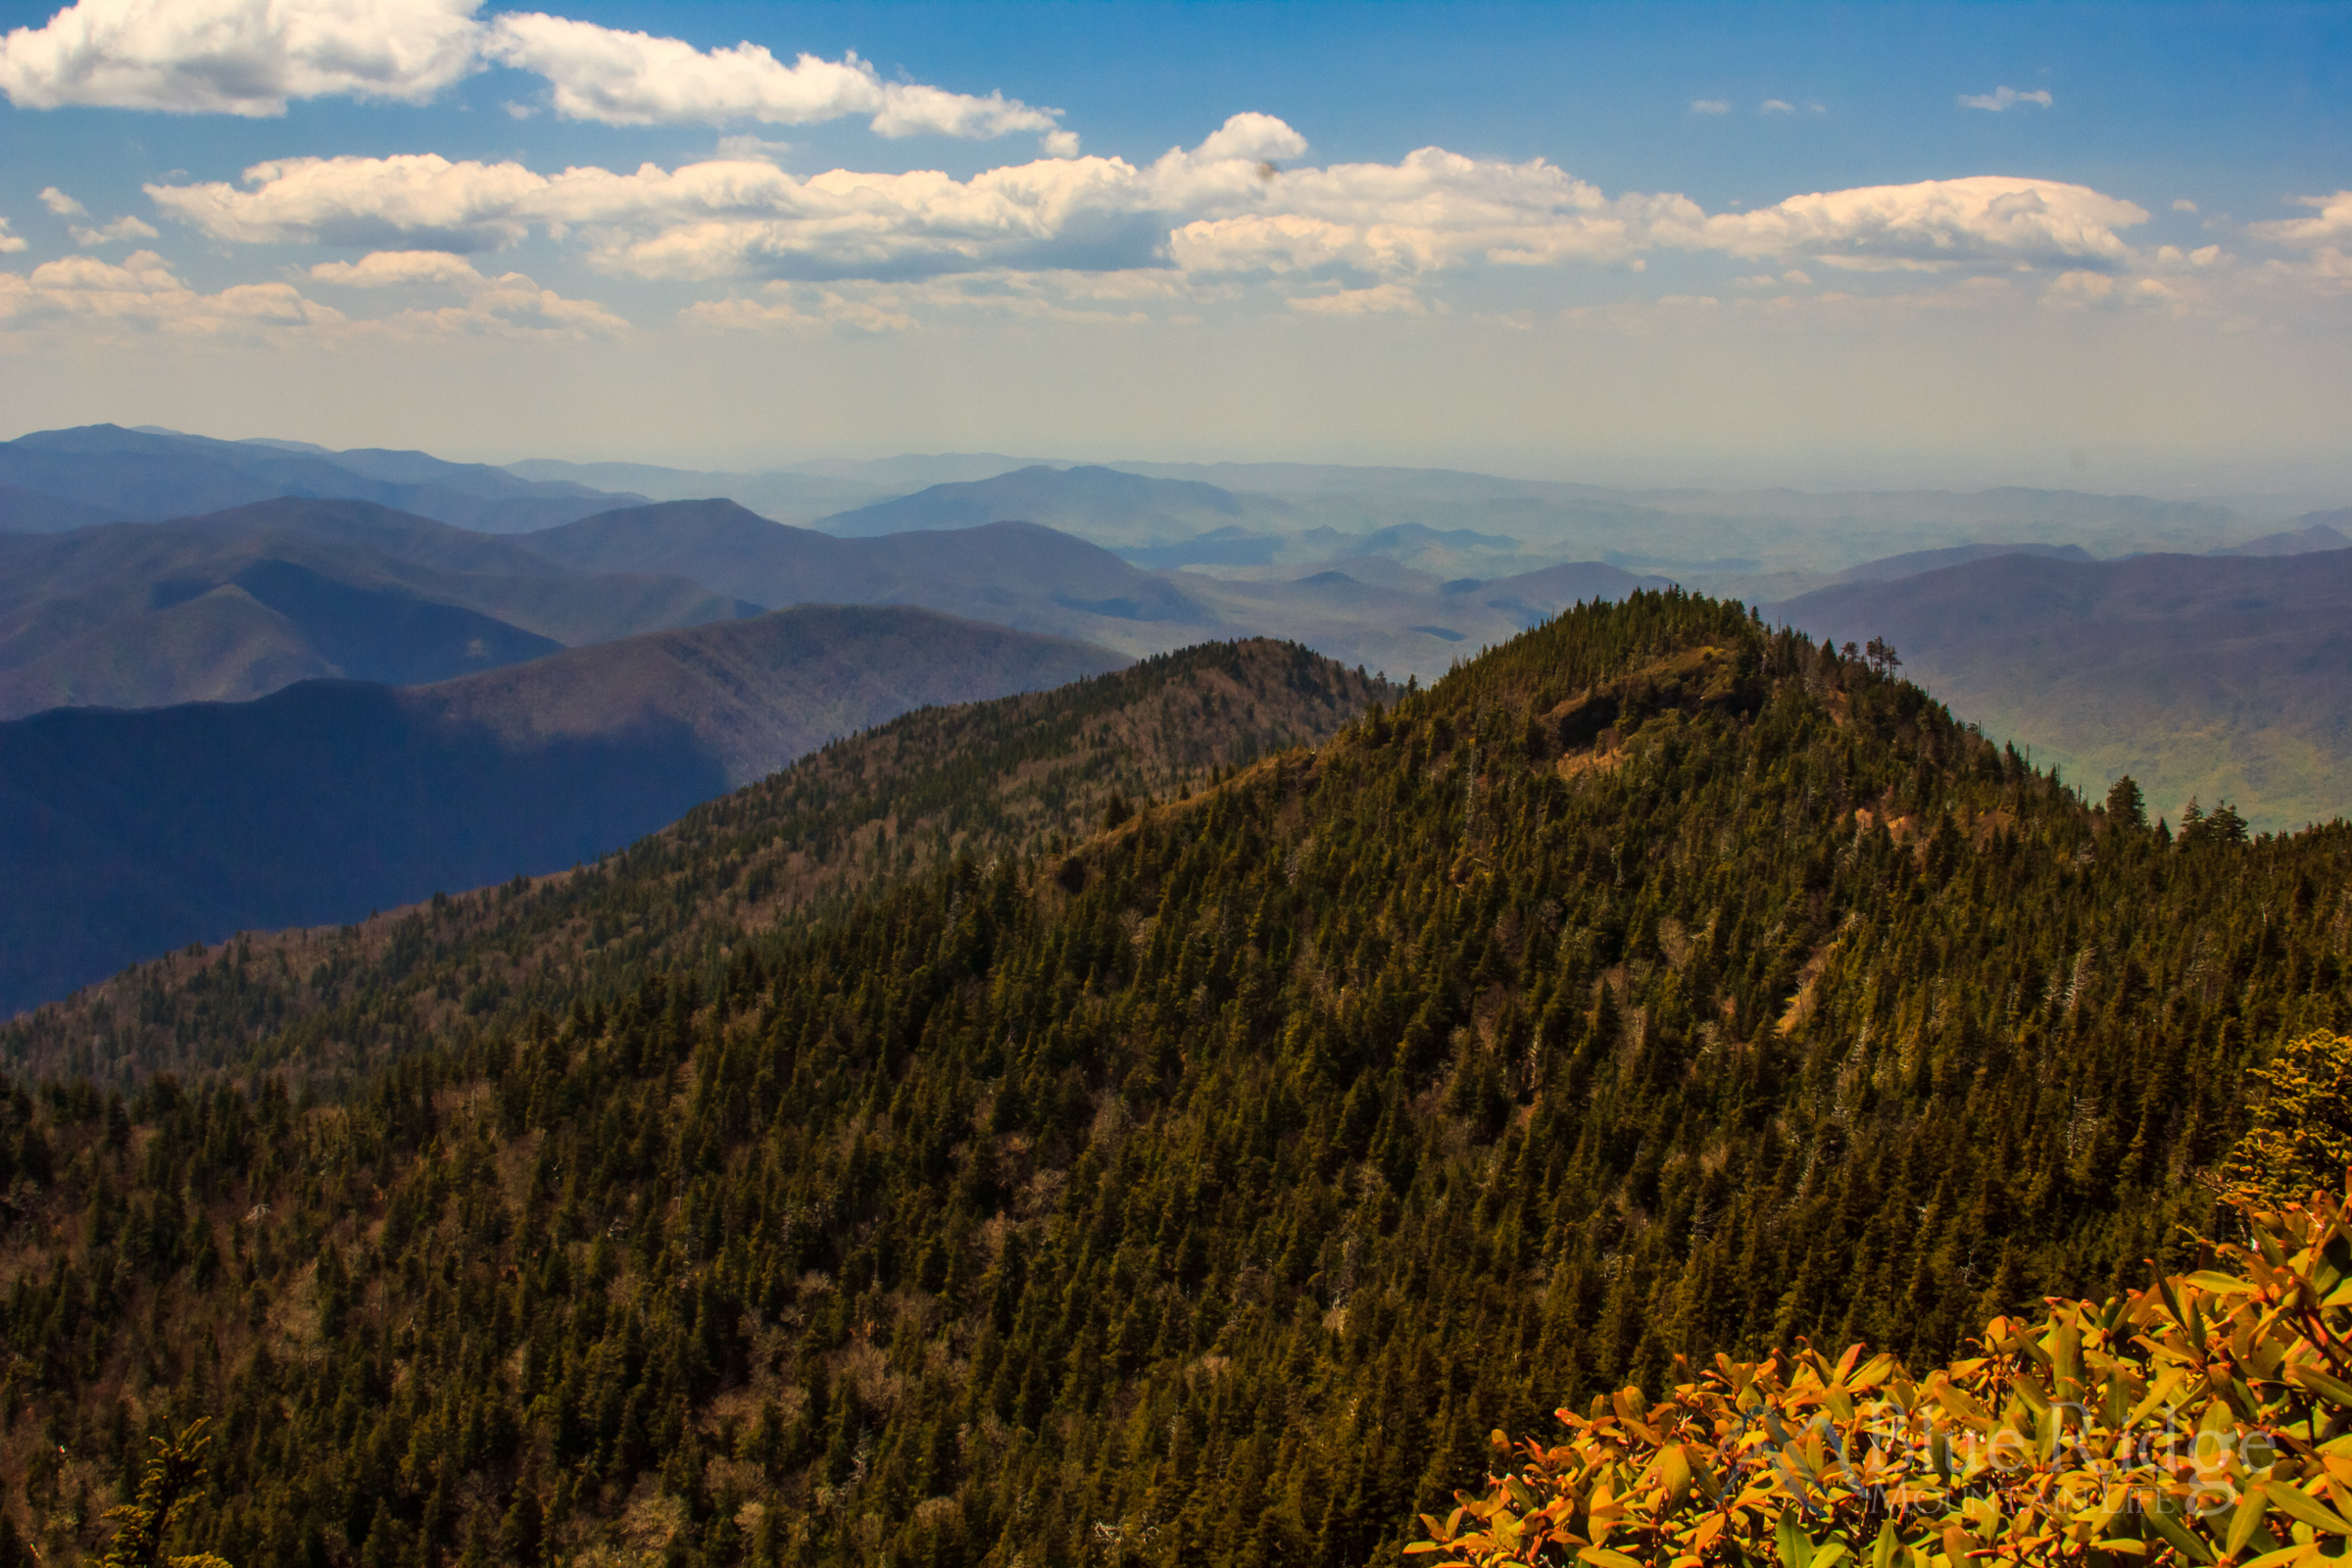 Top of Mount LeConte